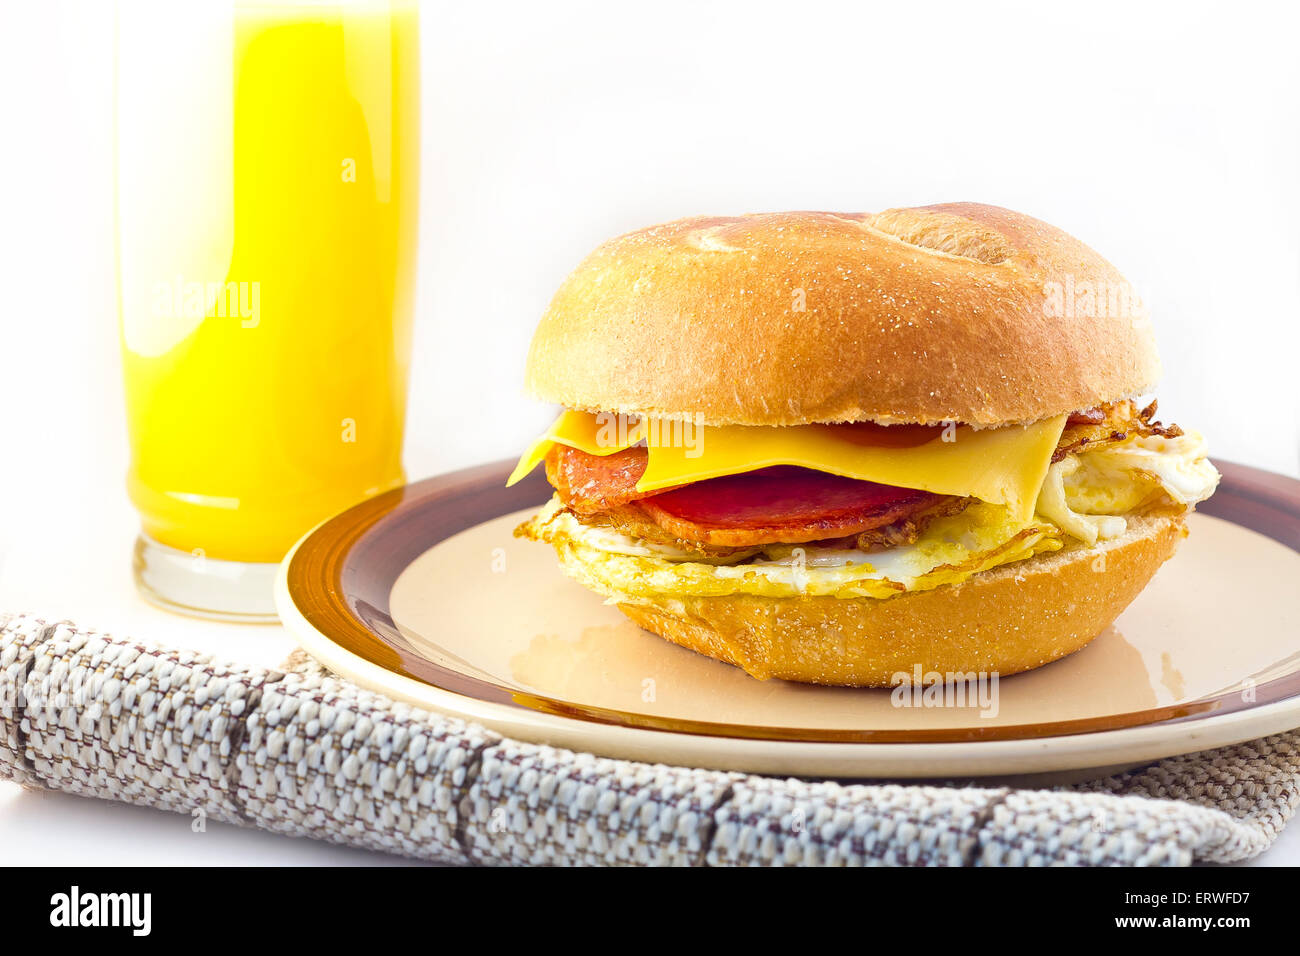 Taylor ham, pork roll, egg and cheese breakfast sandwich on a kaiser roll from New Jersey Stock Photo